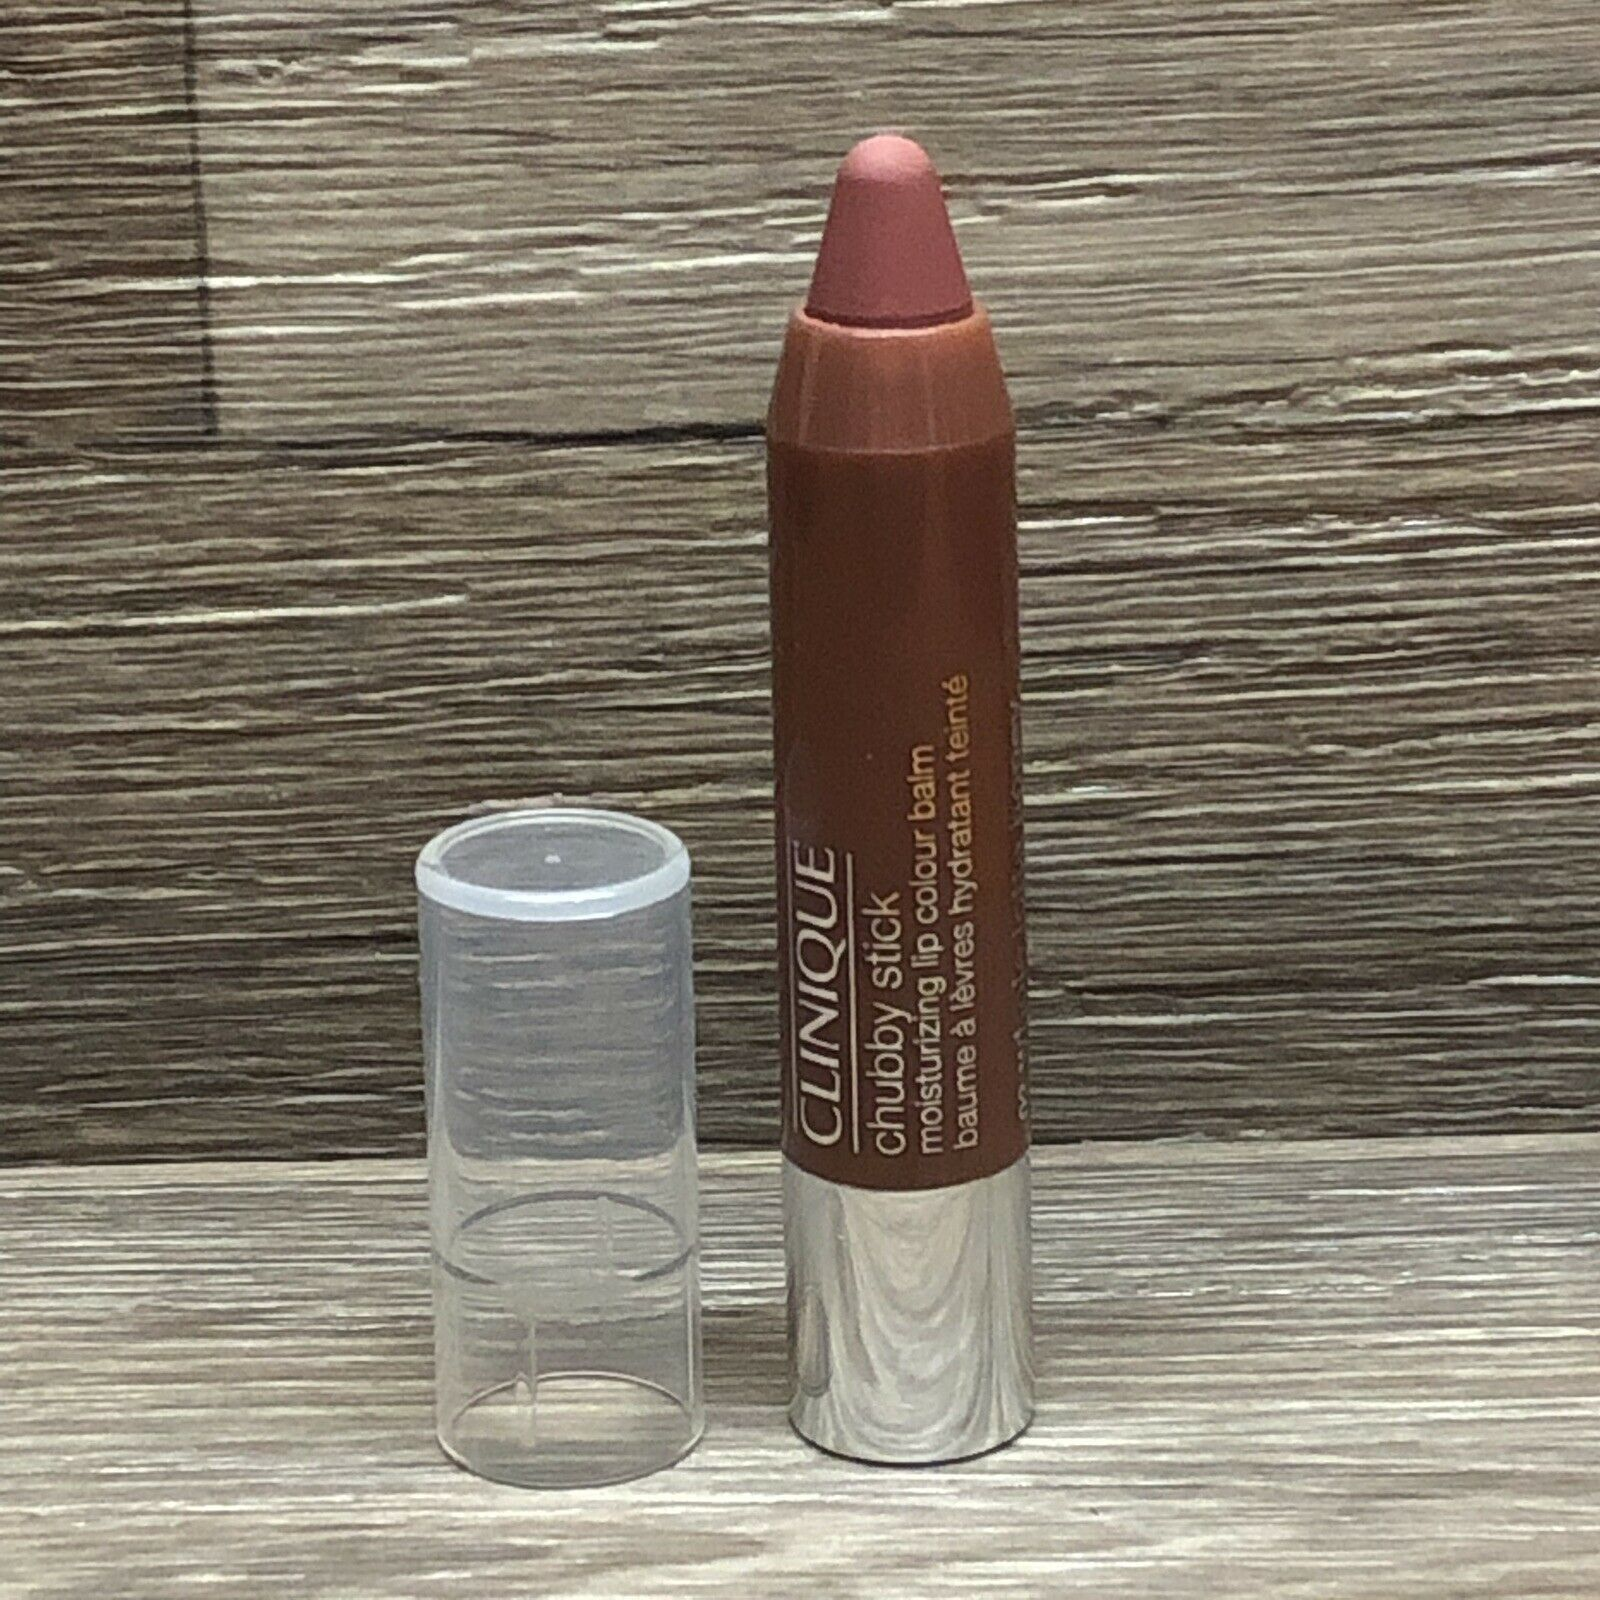 Primary image for Clinique Chubby Stick Moisturizing Lip Colour Balm 02 Whole Lotta Honey Travel